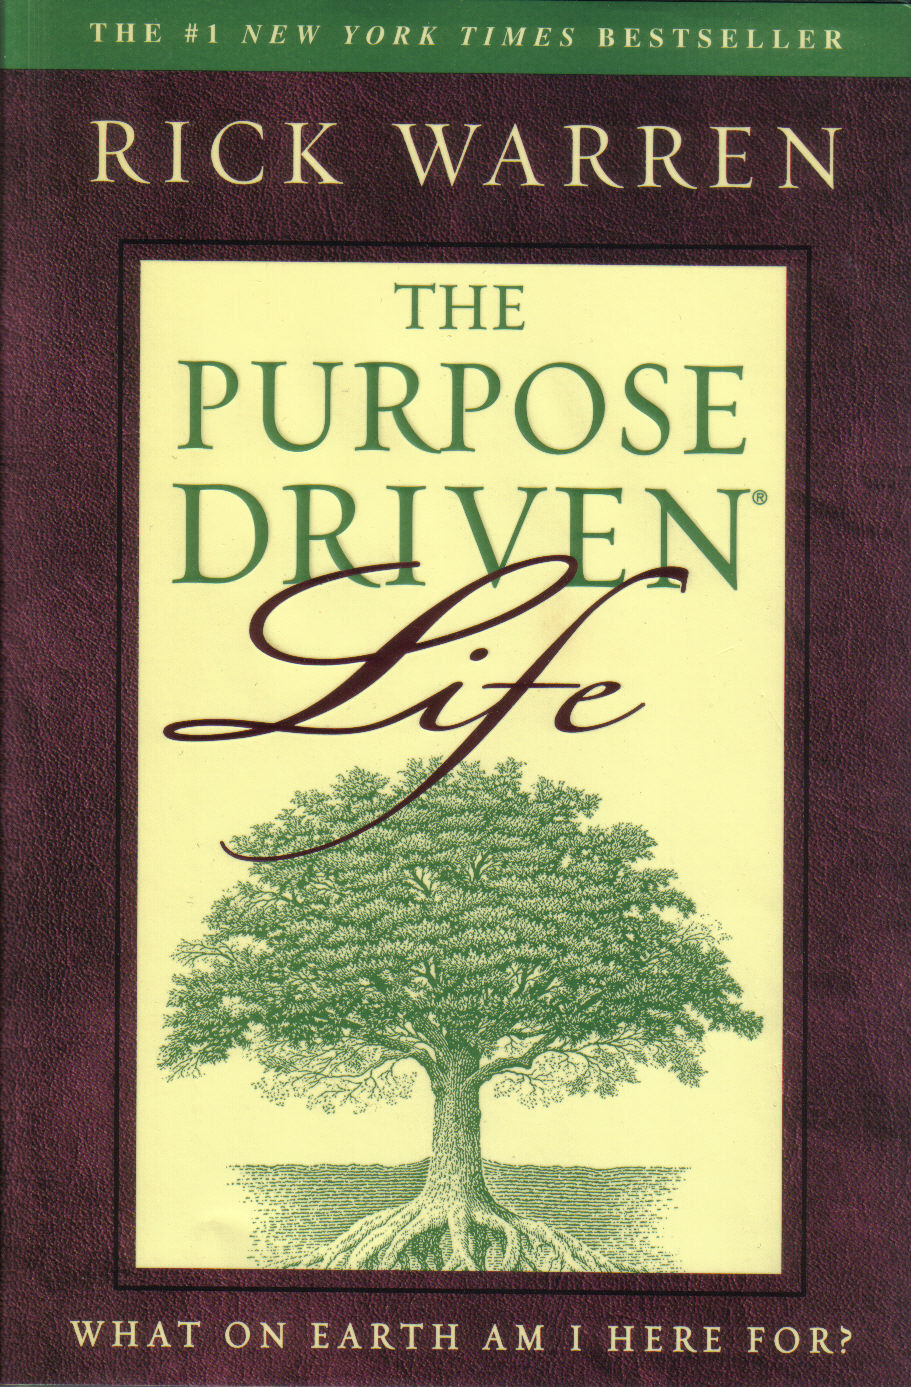 pupose driven life Justthesimple truthcom in 1988, hugh s moorhead, professor of philosophy at northeastern illinois university, published a book entitled the meaning of life 1 in the.